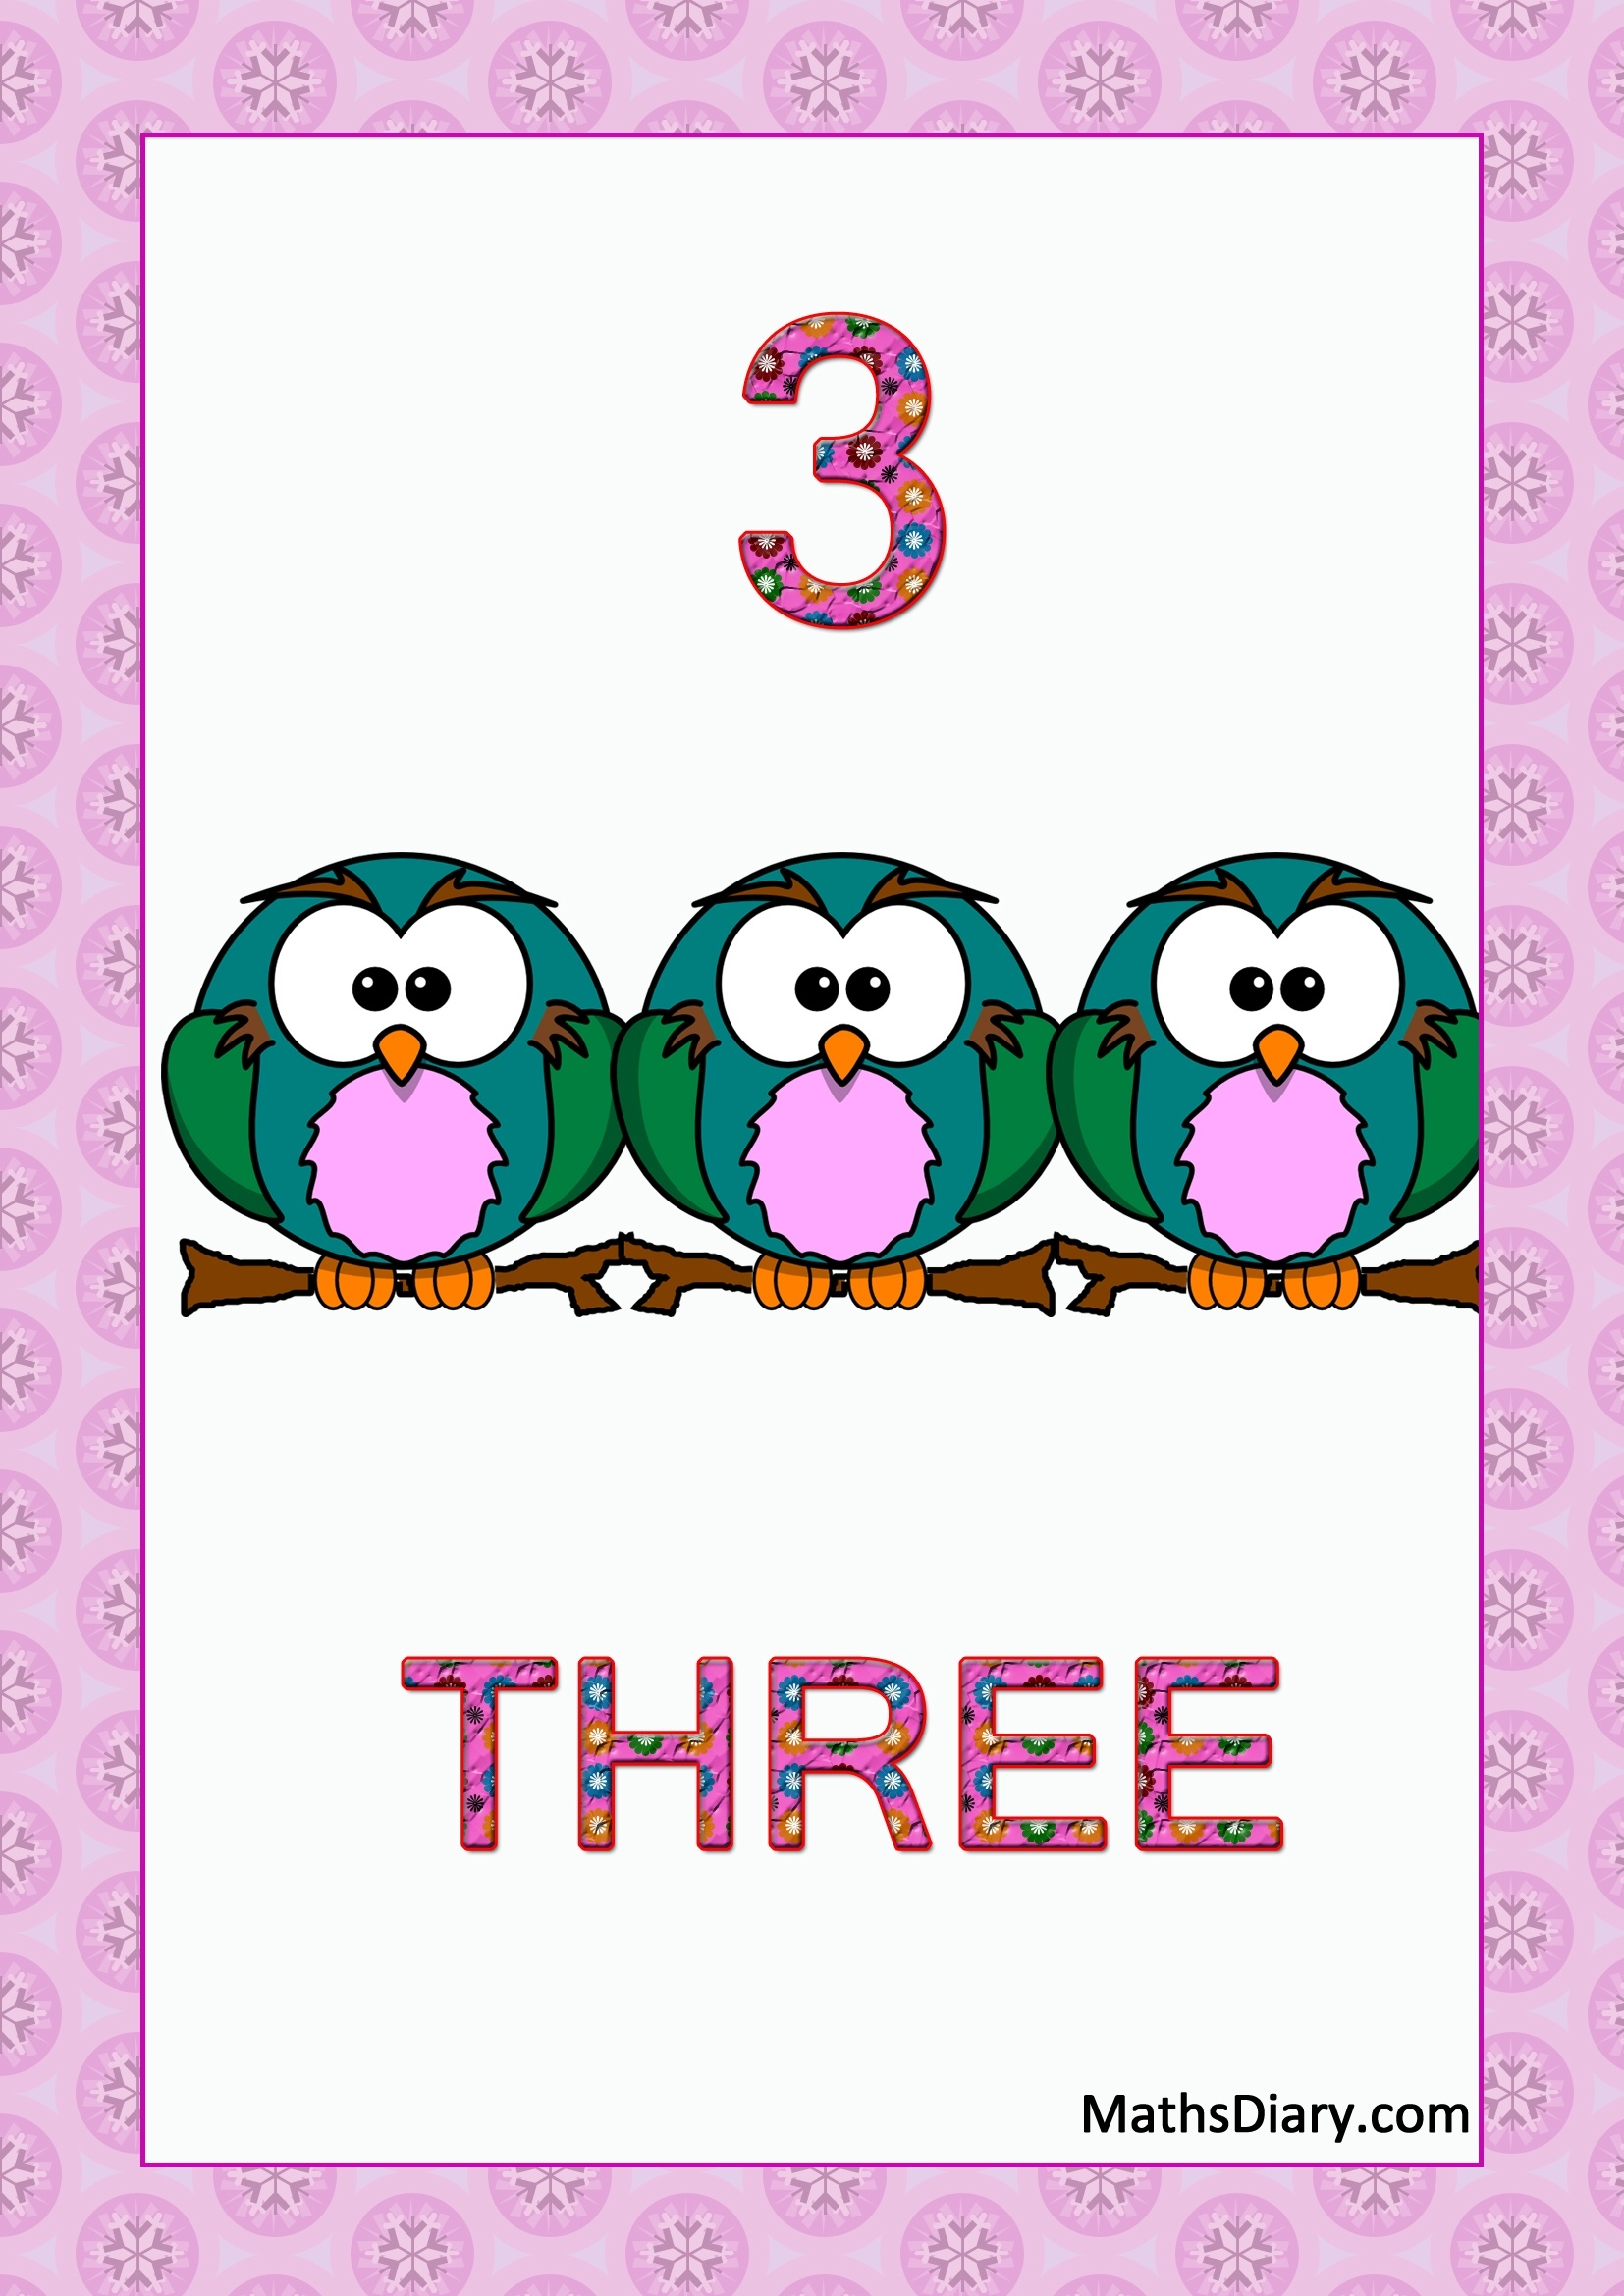 46 Attractive Number Flash Cards Kittybabylove Com